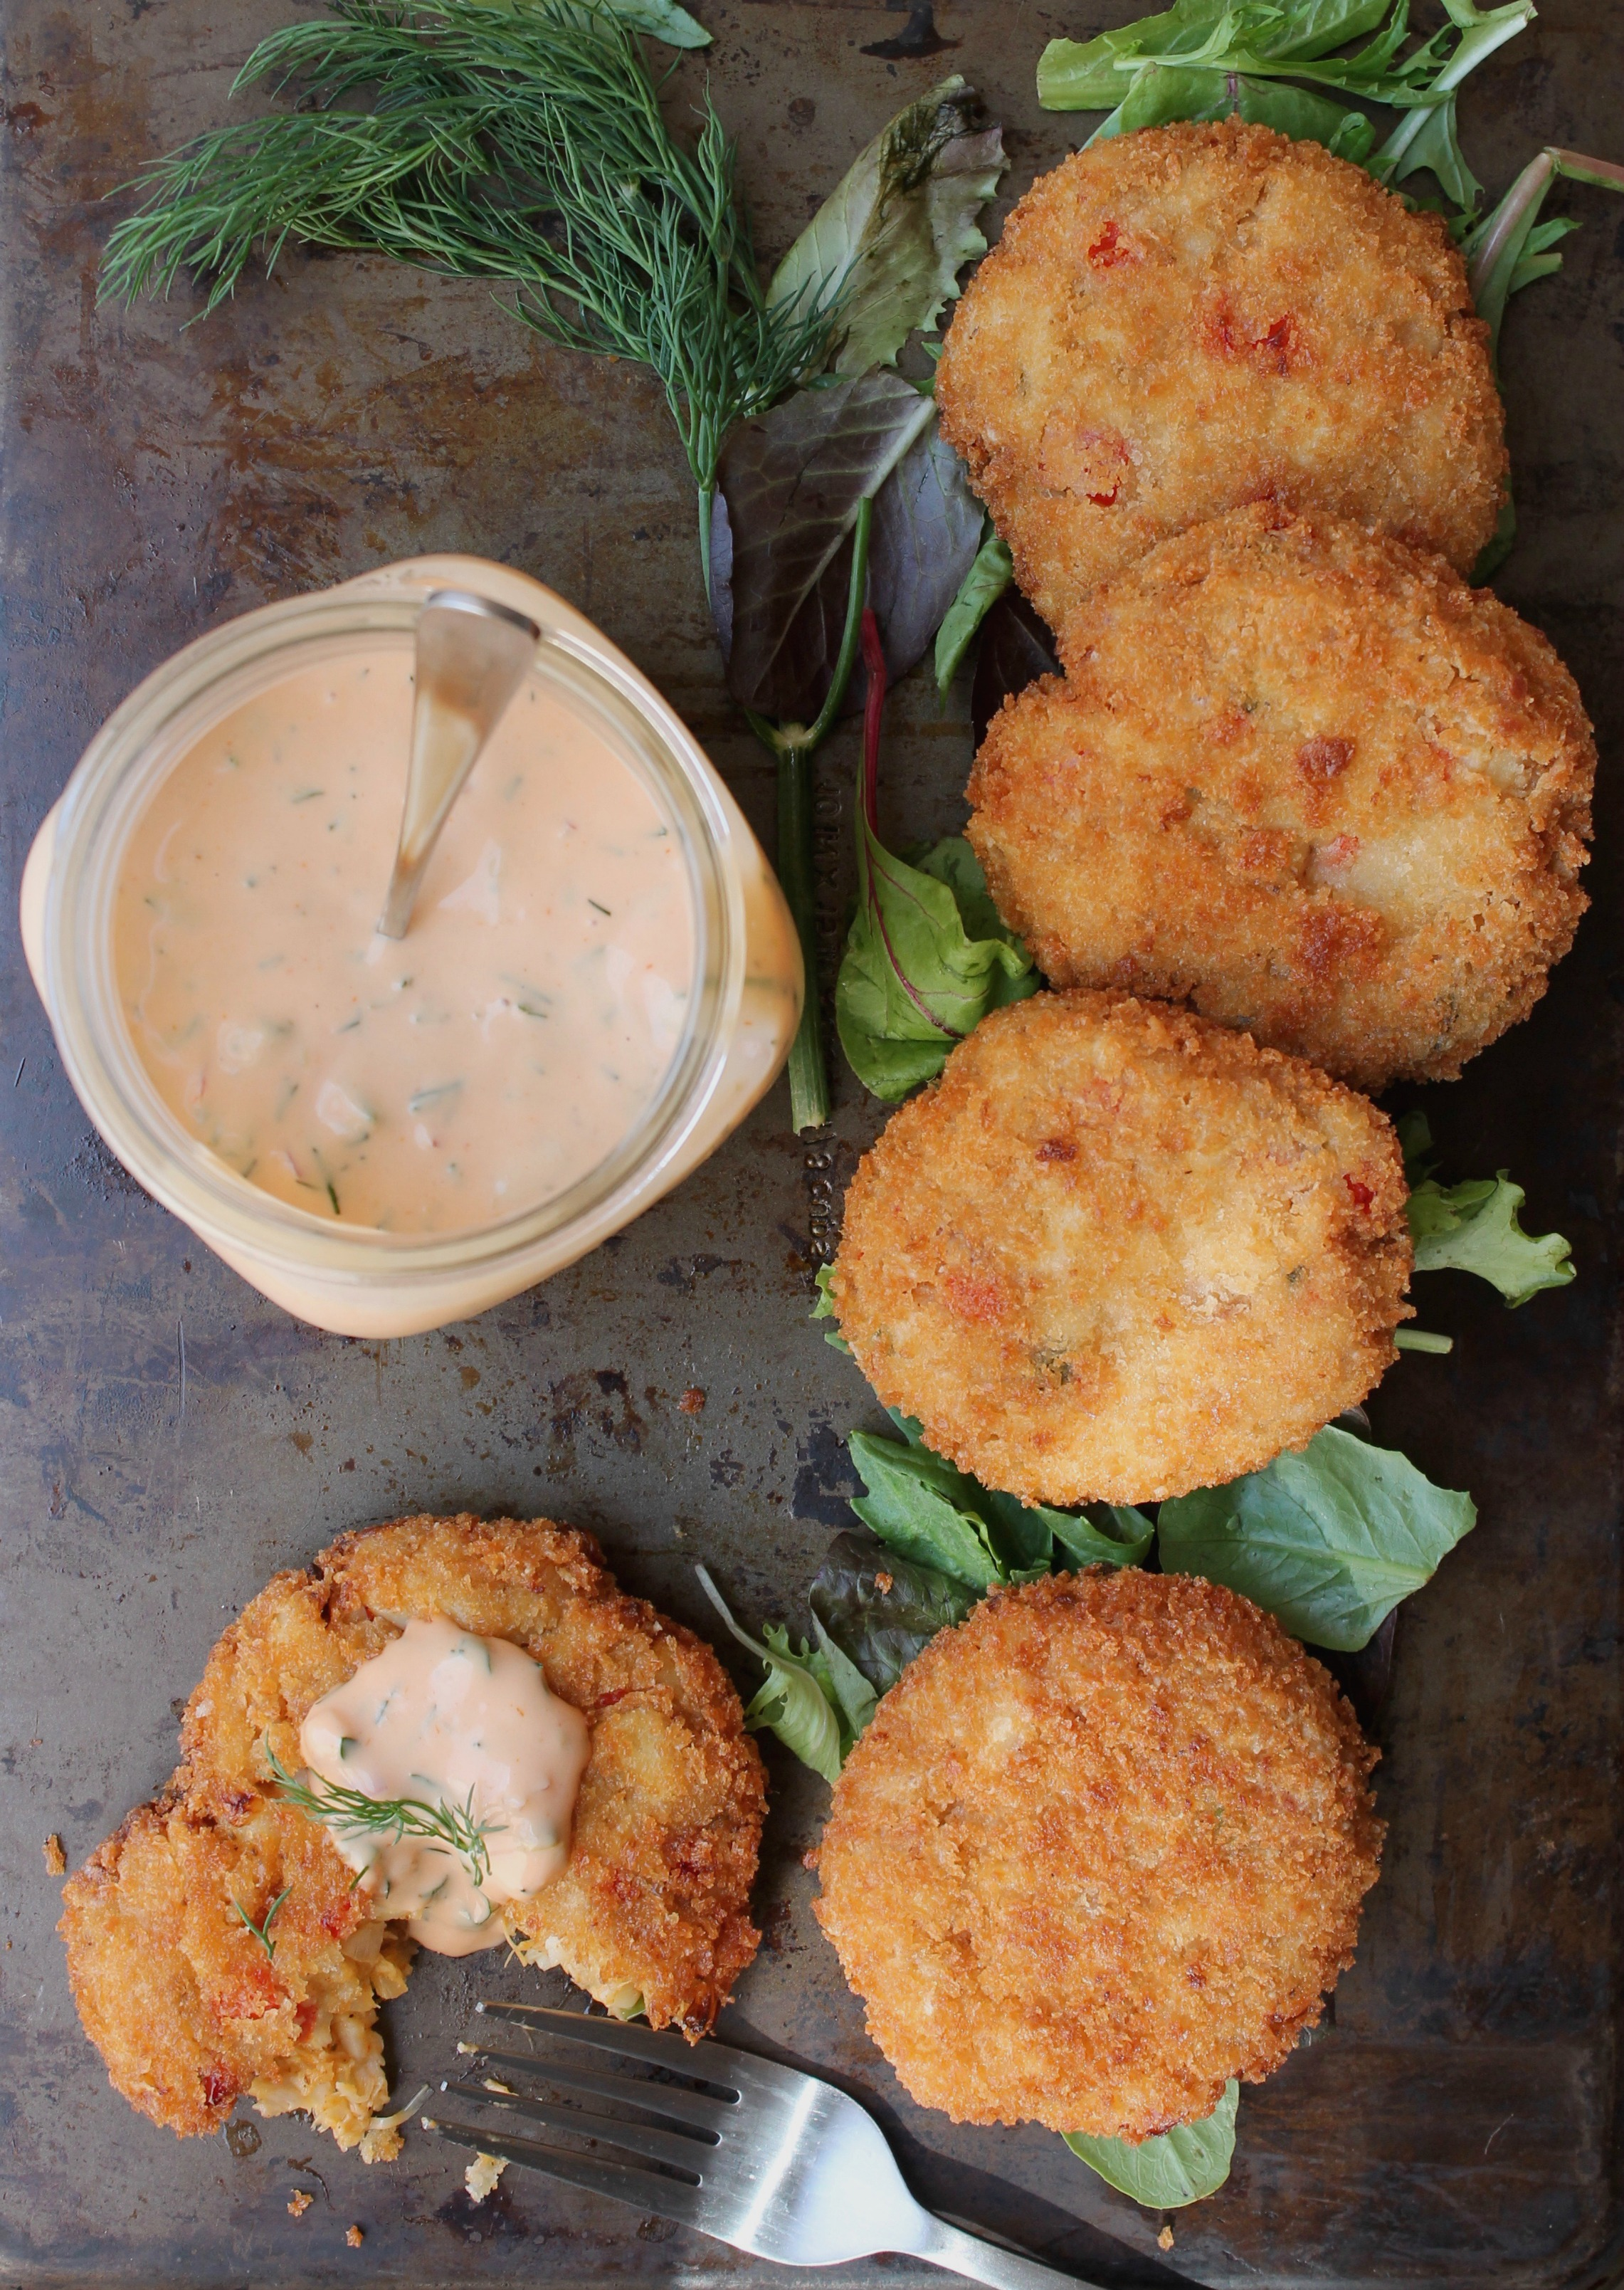 Vegan Crab Cakes Crabless Cakes With Dill Remoulade